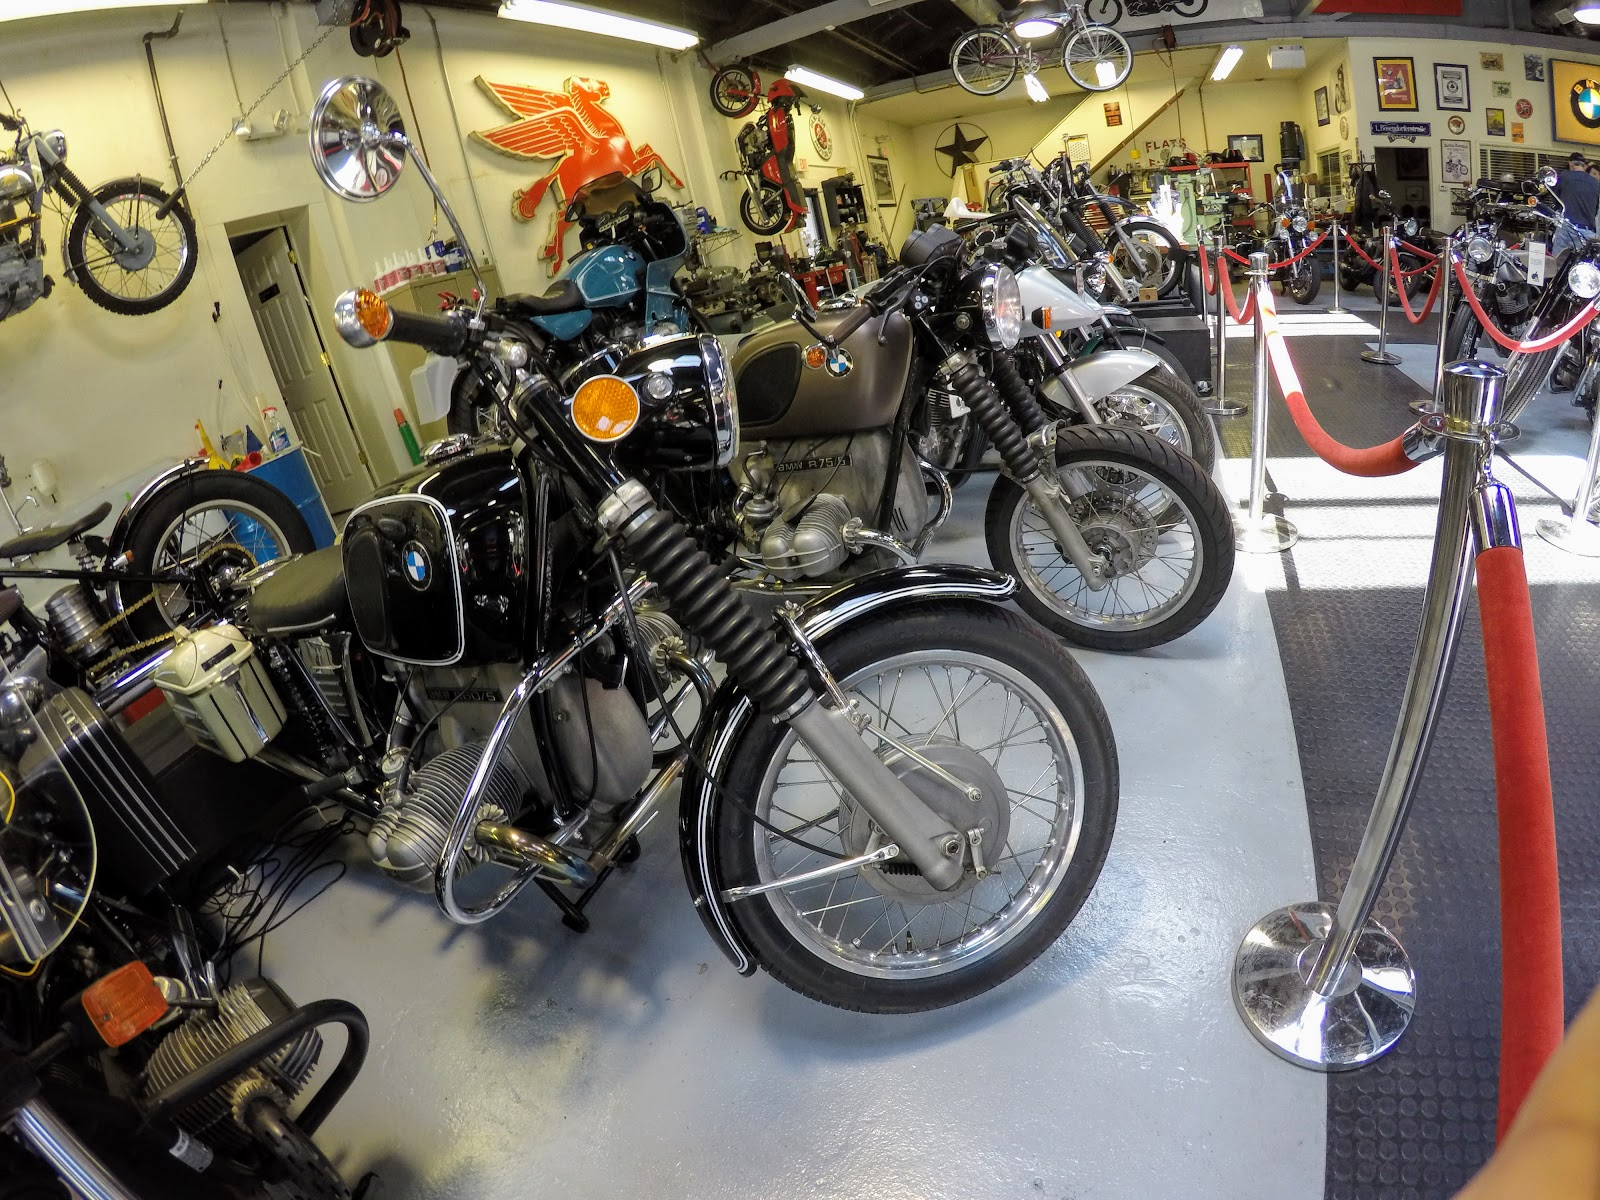 NYDUCATI presents Billy Joel's 20th Century Cycles 1973 BMW R60